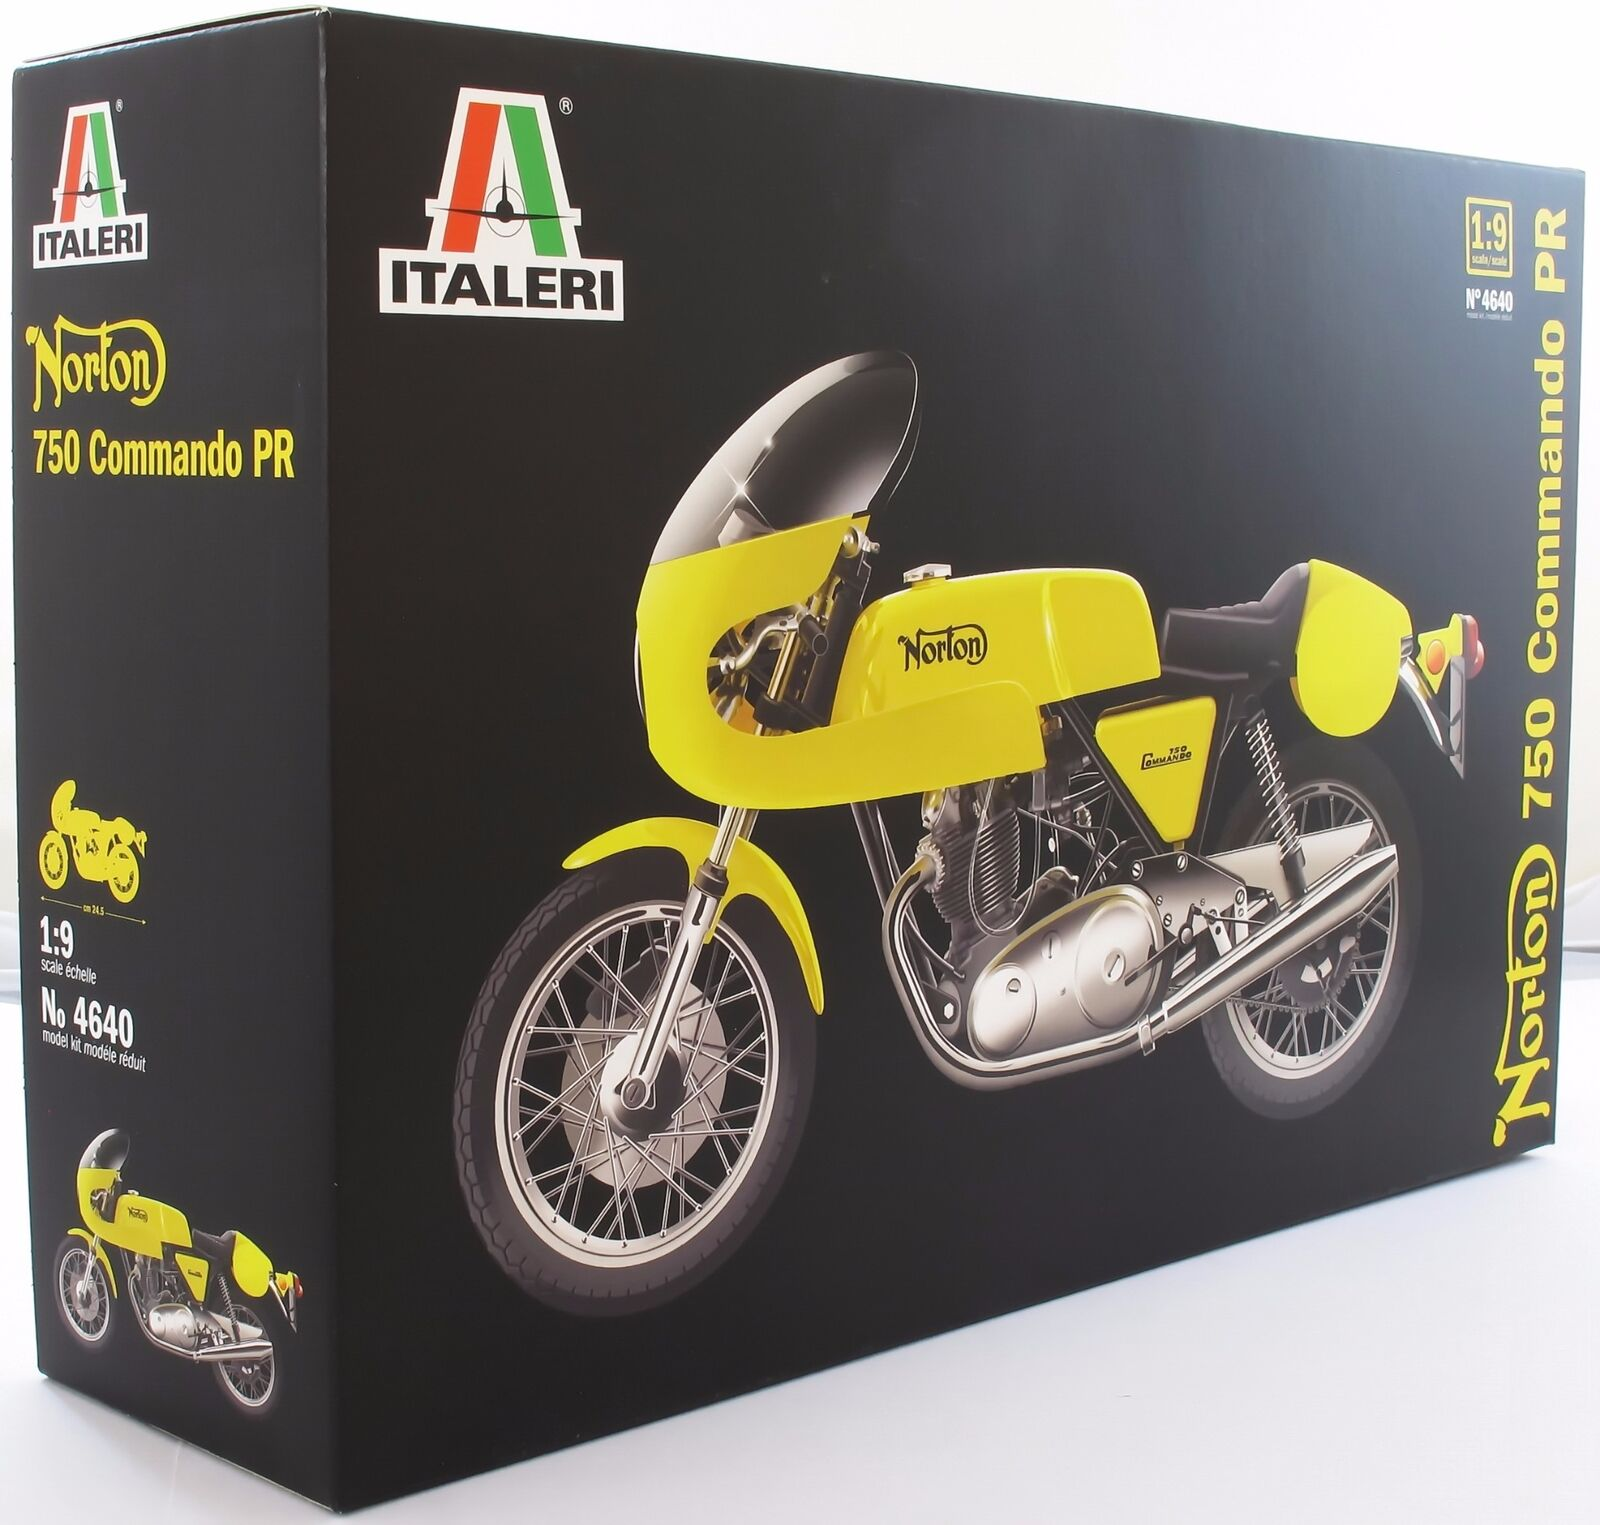 Italeri 1 9 4640 Norton Commando 750cc Model Motorcycle Kit